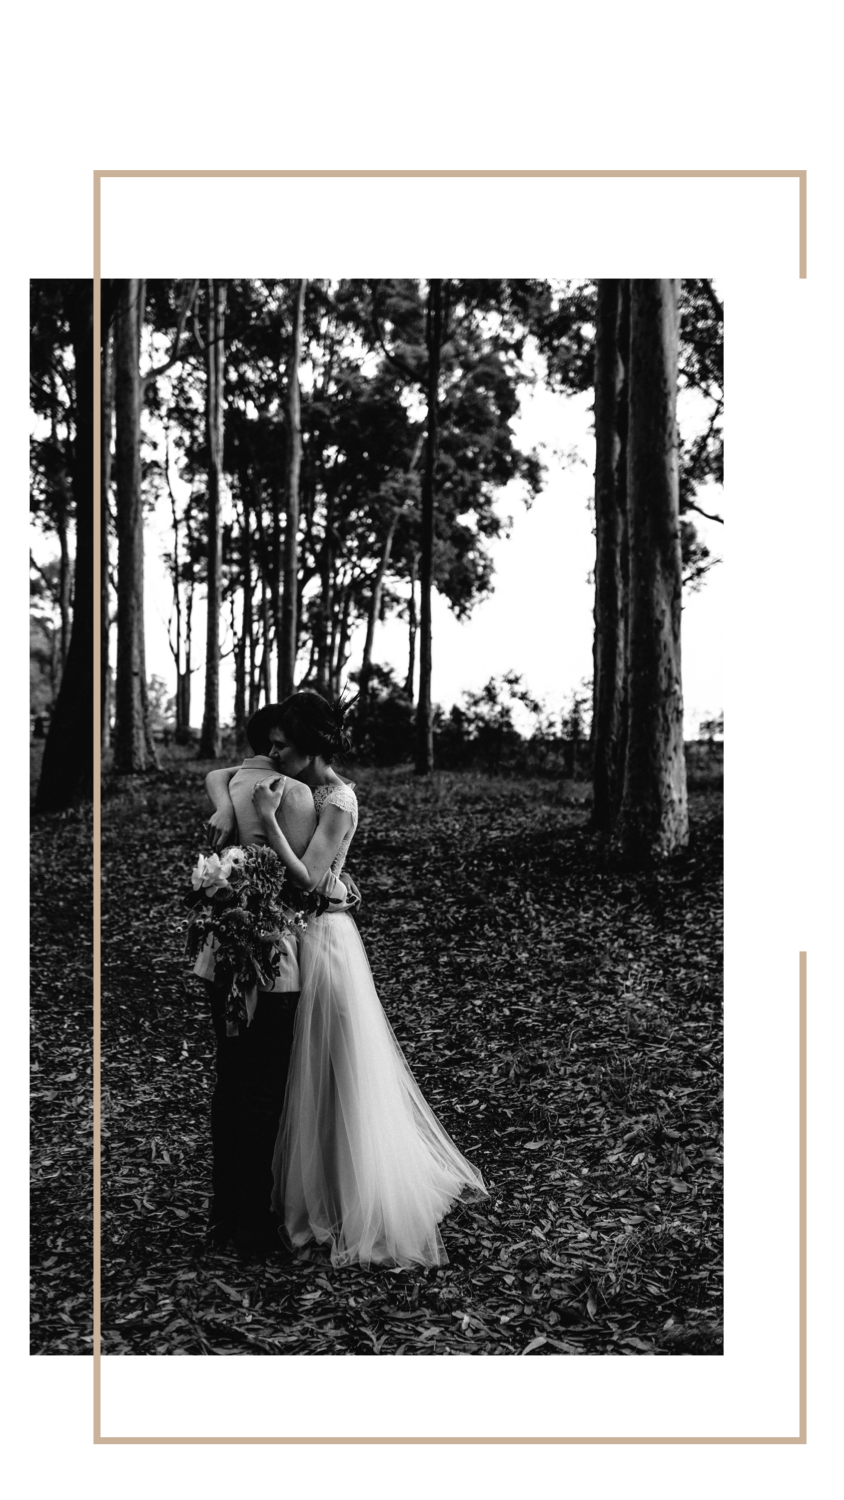 Canberra-wedding-photographer-lauren-campbell-forest